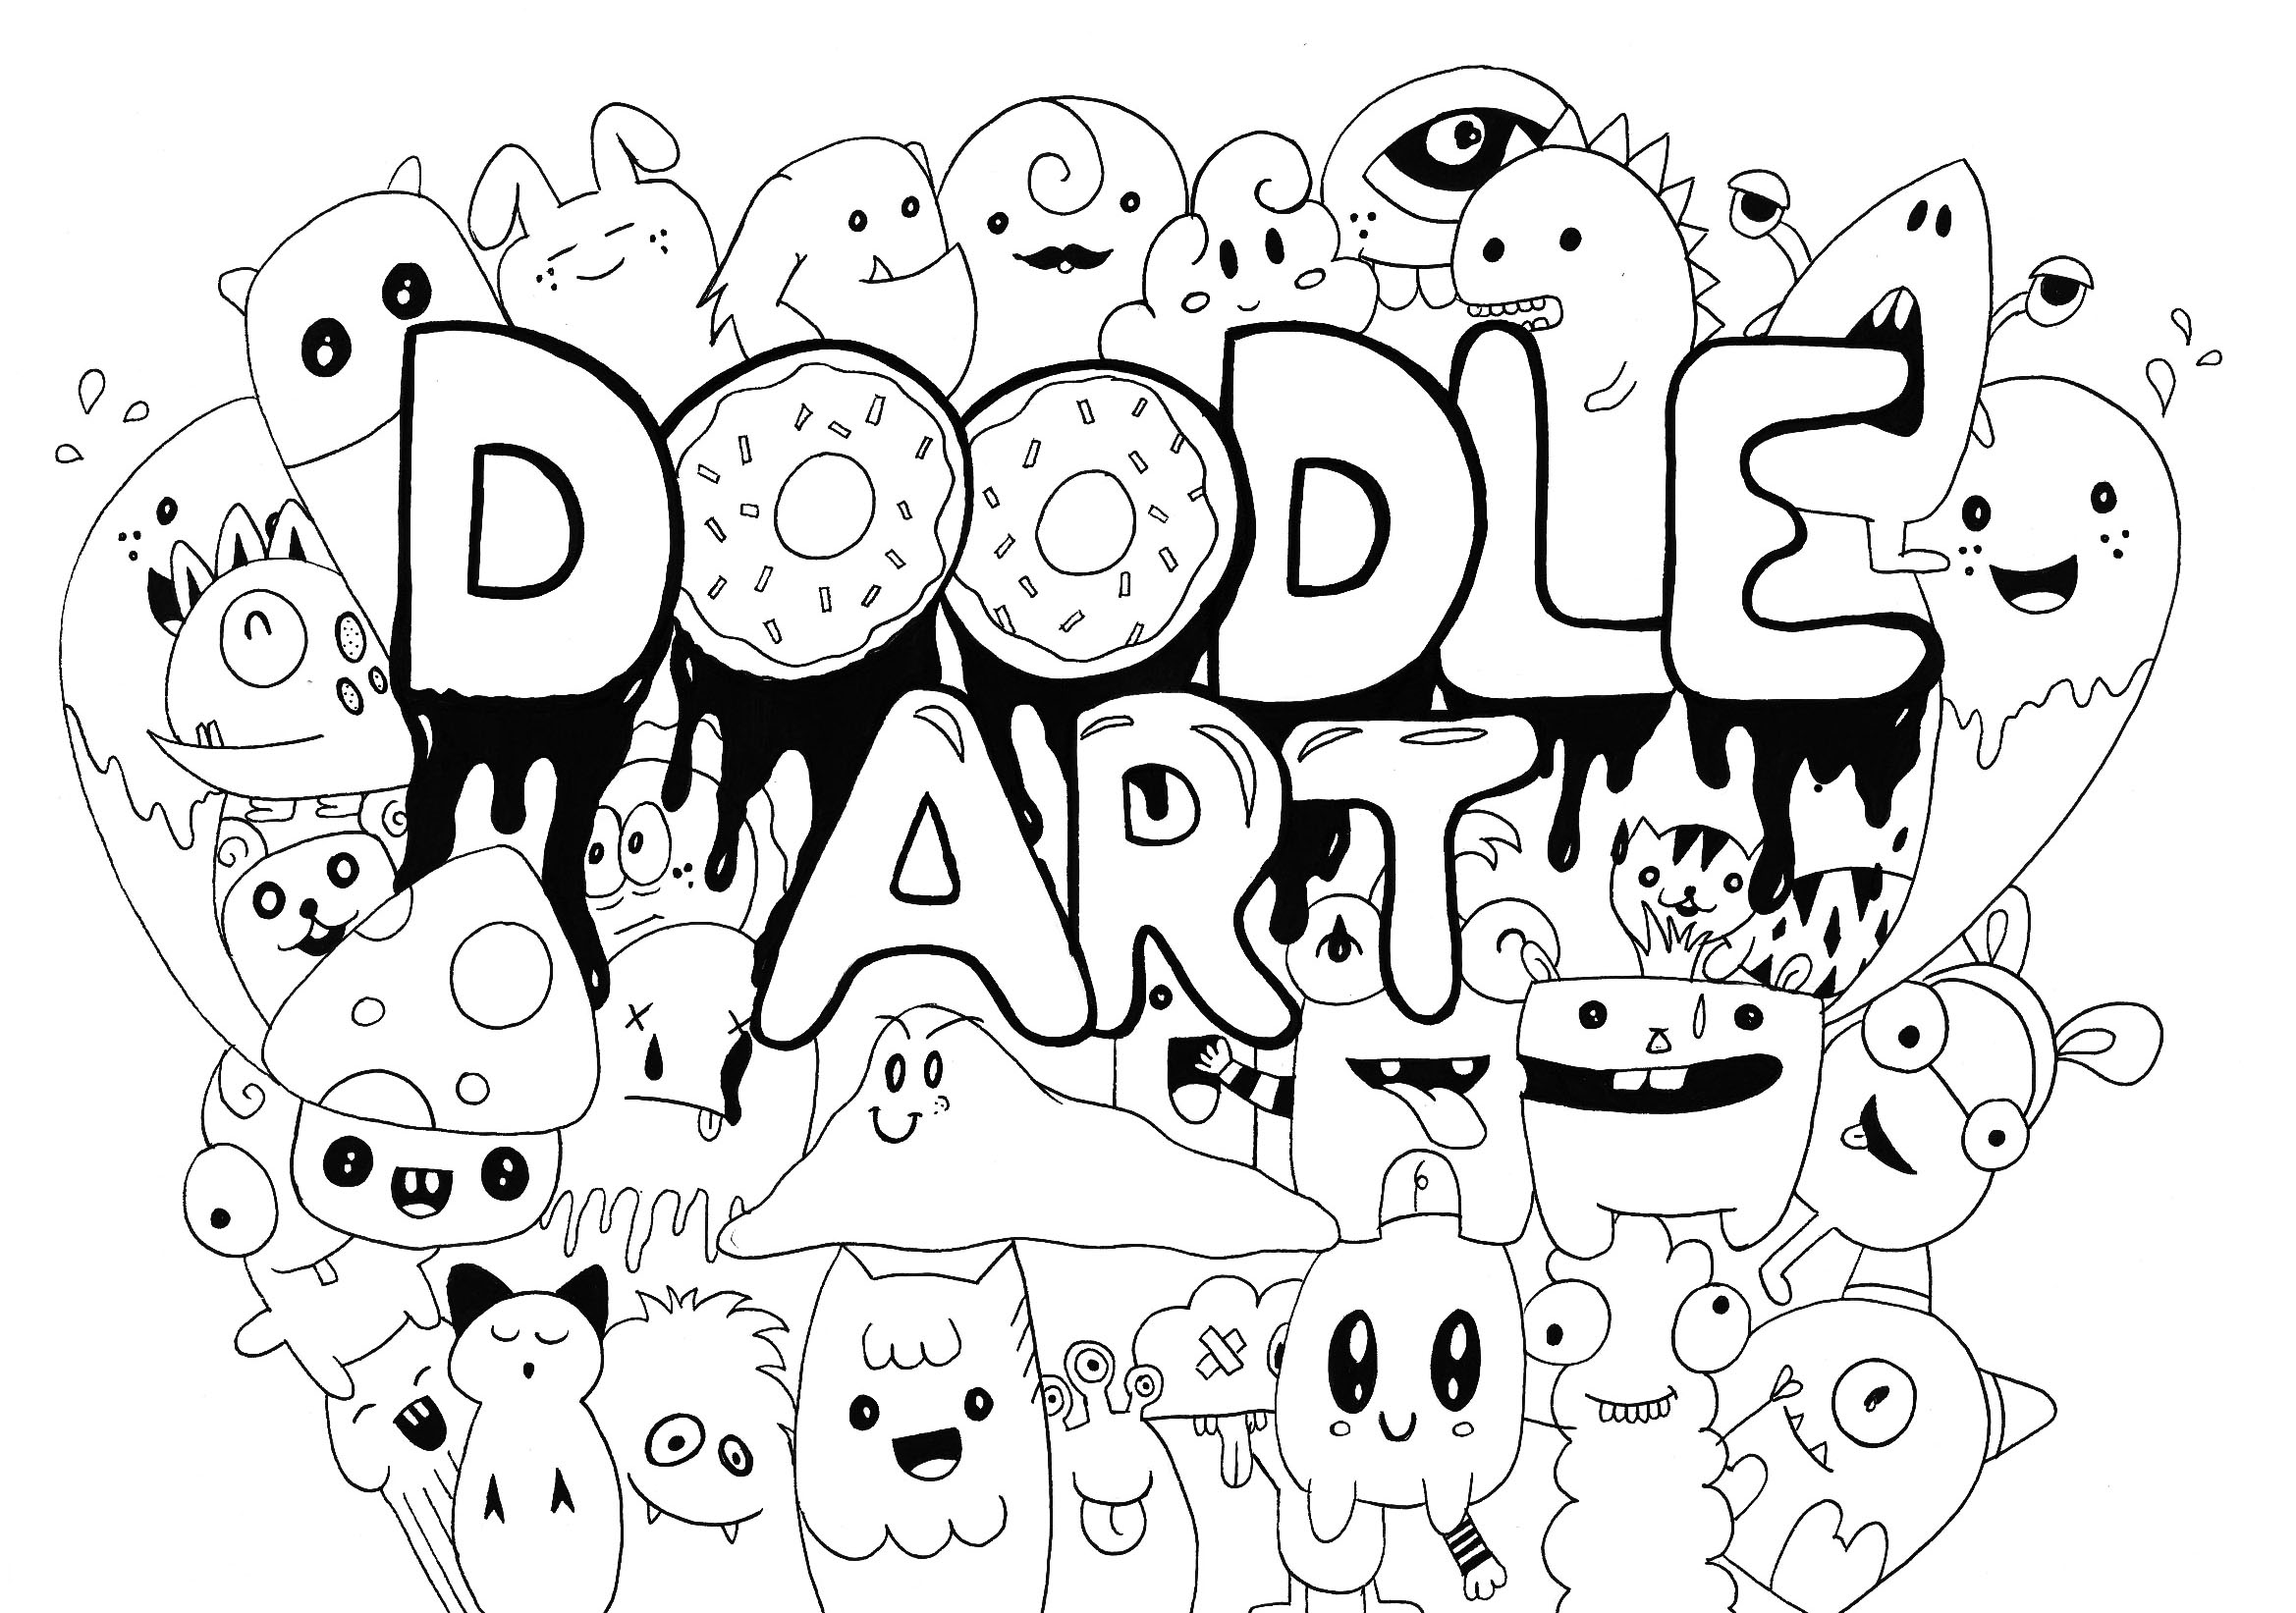 Kawaii characters, gathered in a coloring page entitled 'Doodle Art'